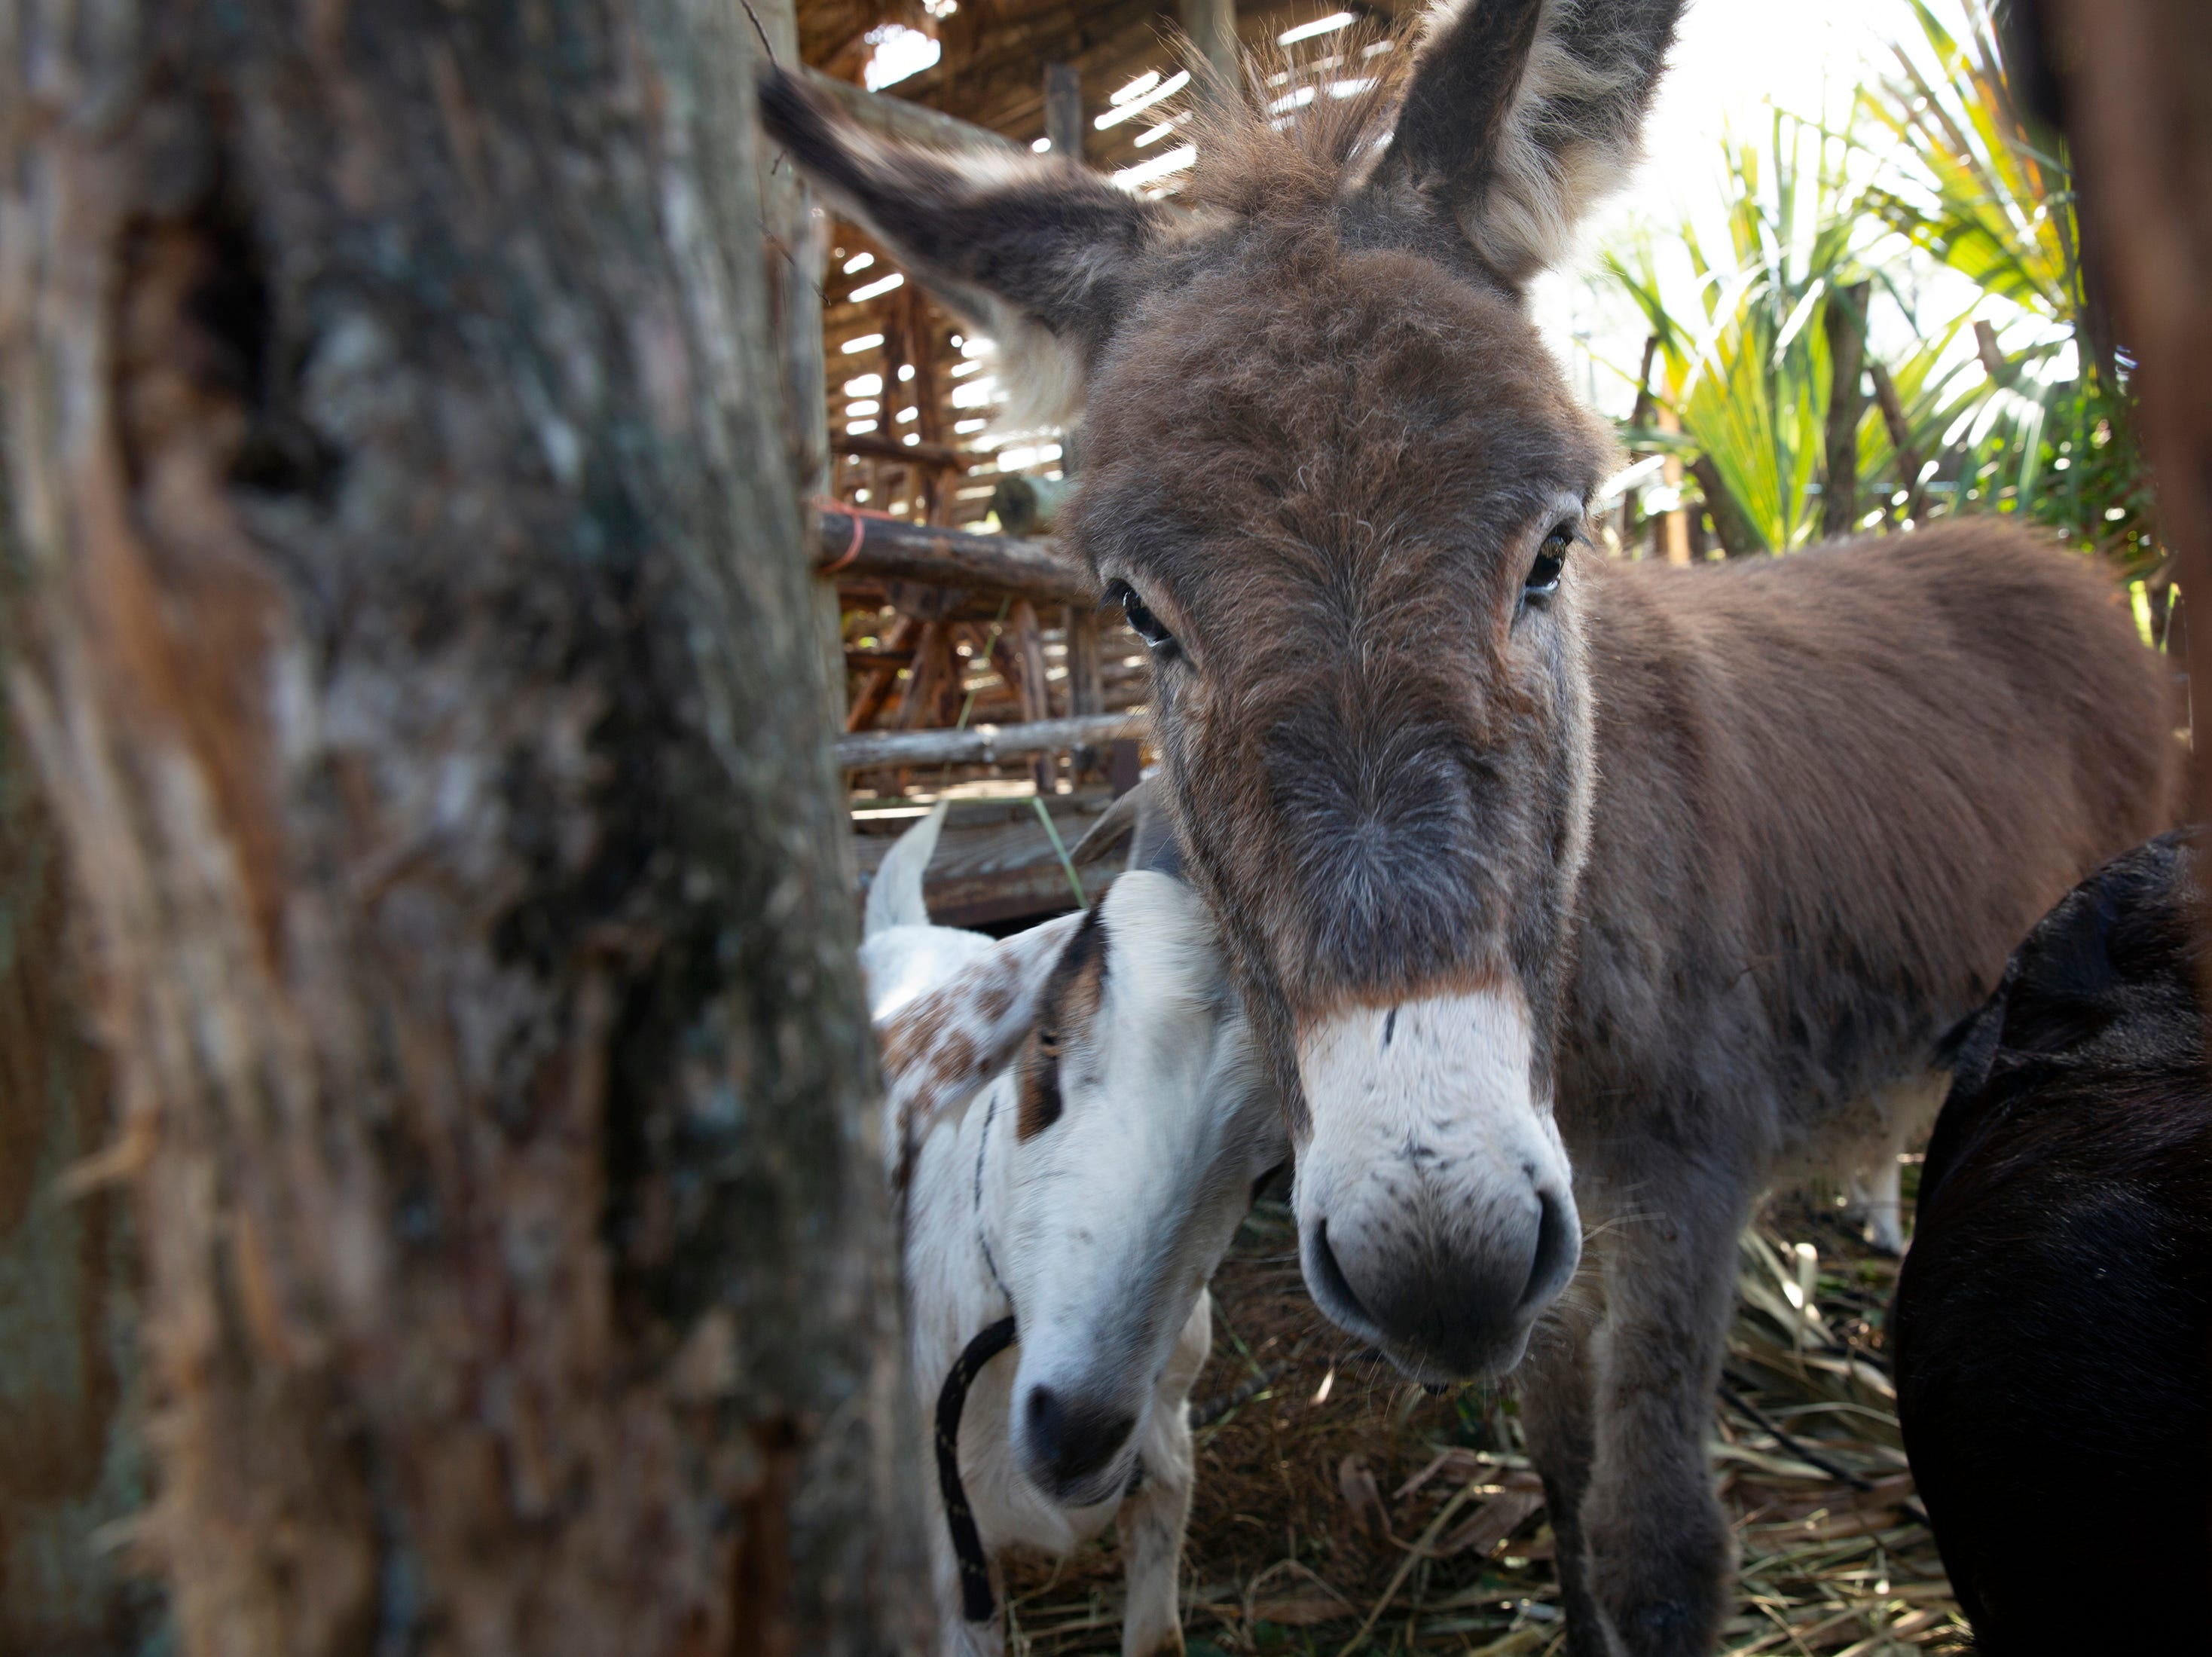 A goat and a donkey share a pen in a live nativity at St. Agnes Catholic Church on Sunday, Dec. 16, 2018, in East Naples.